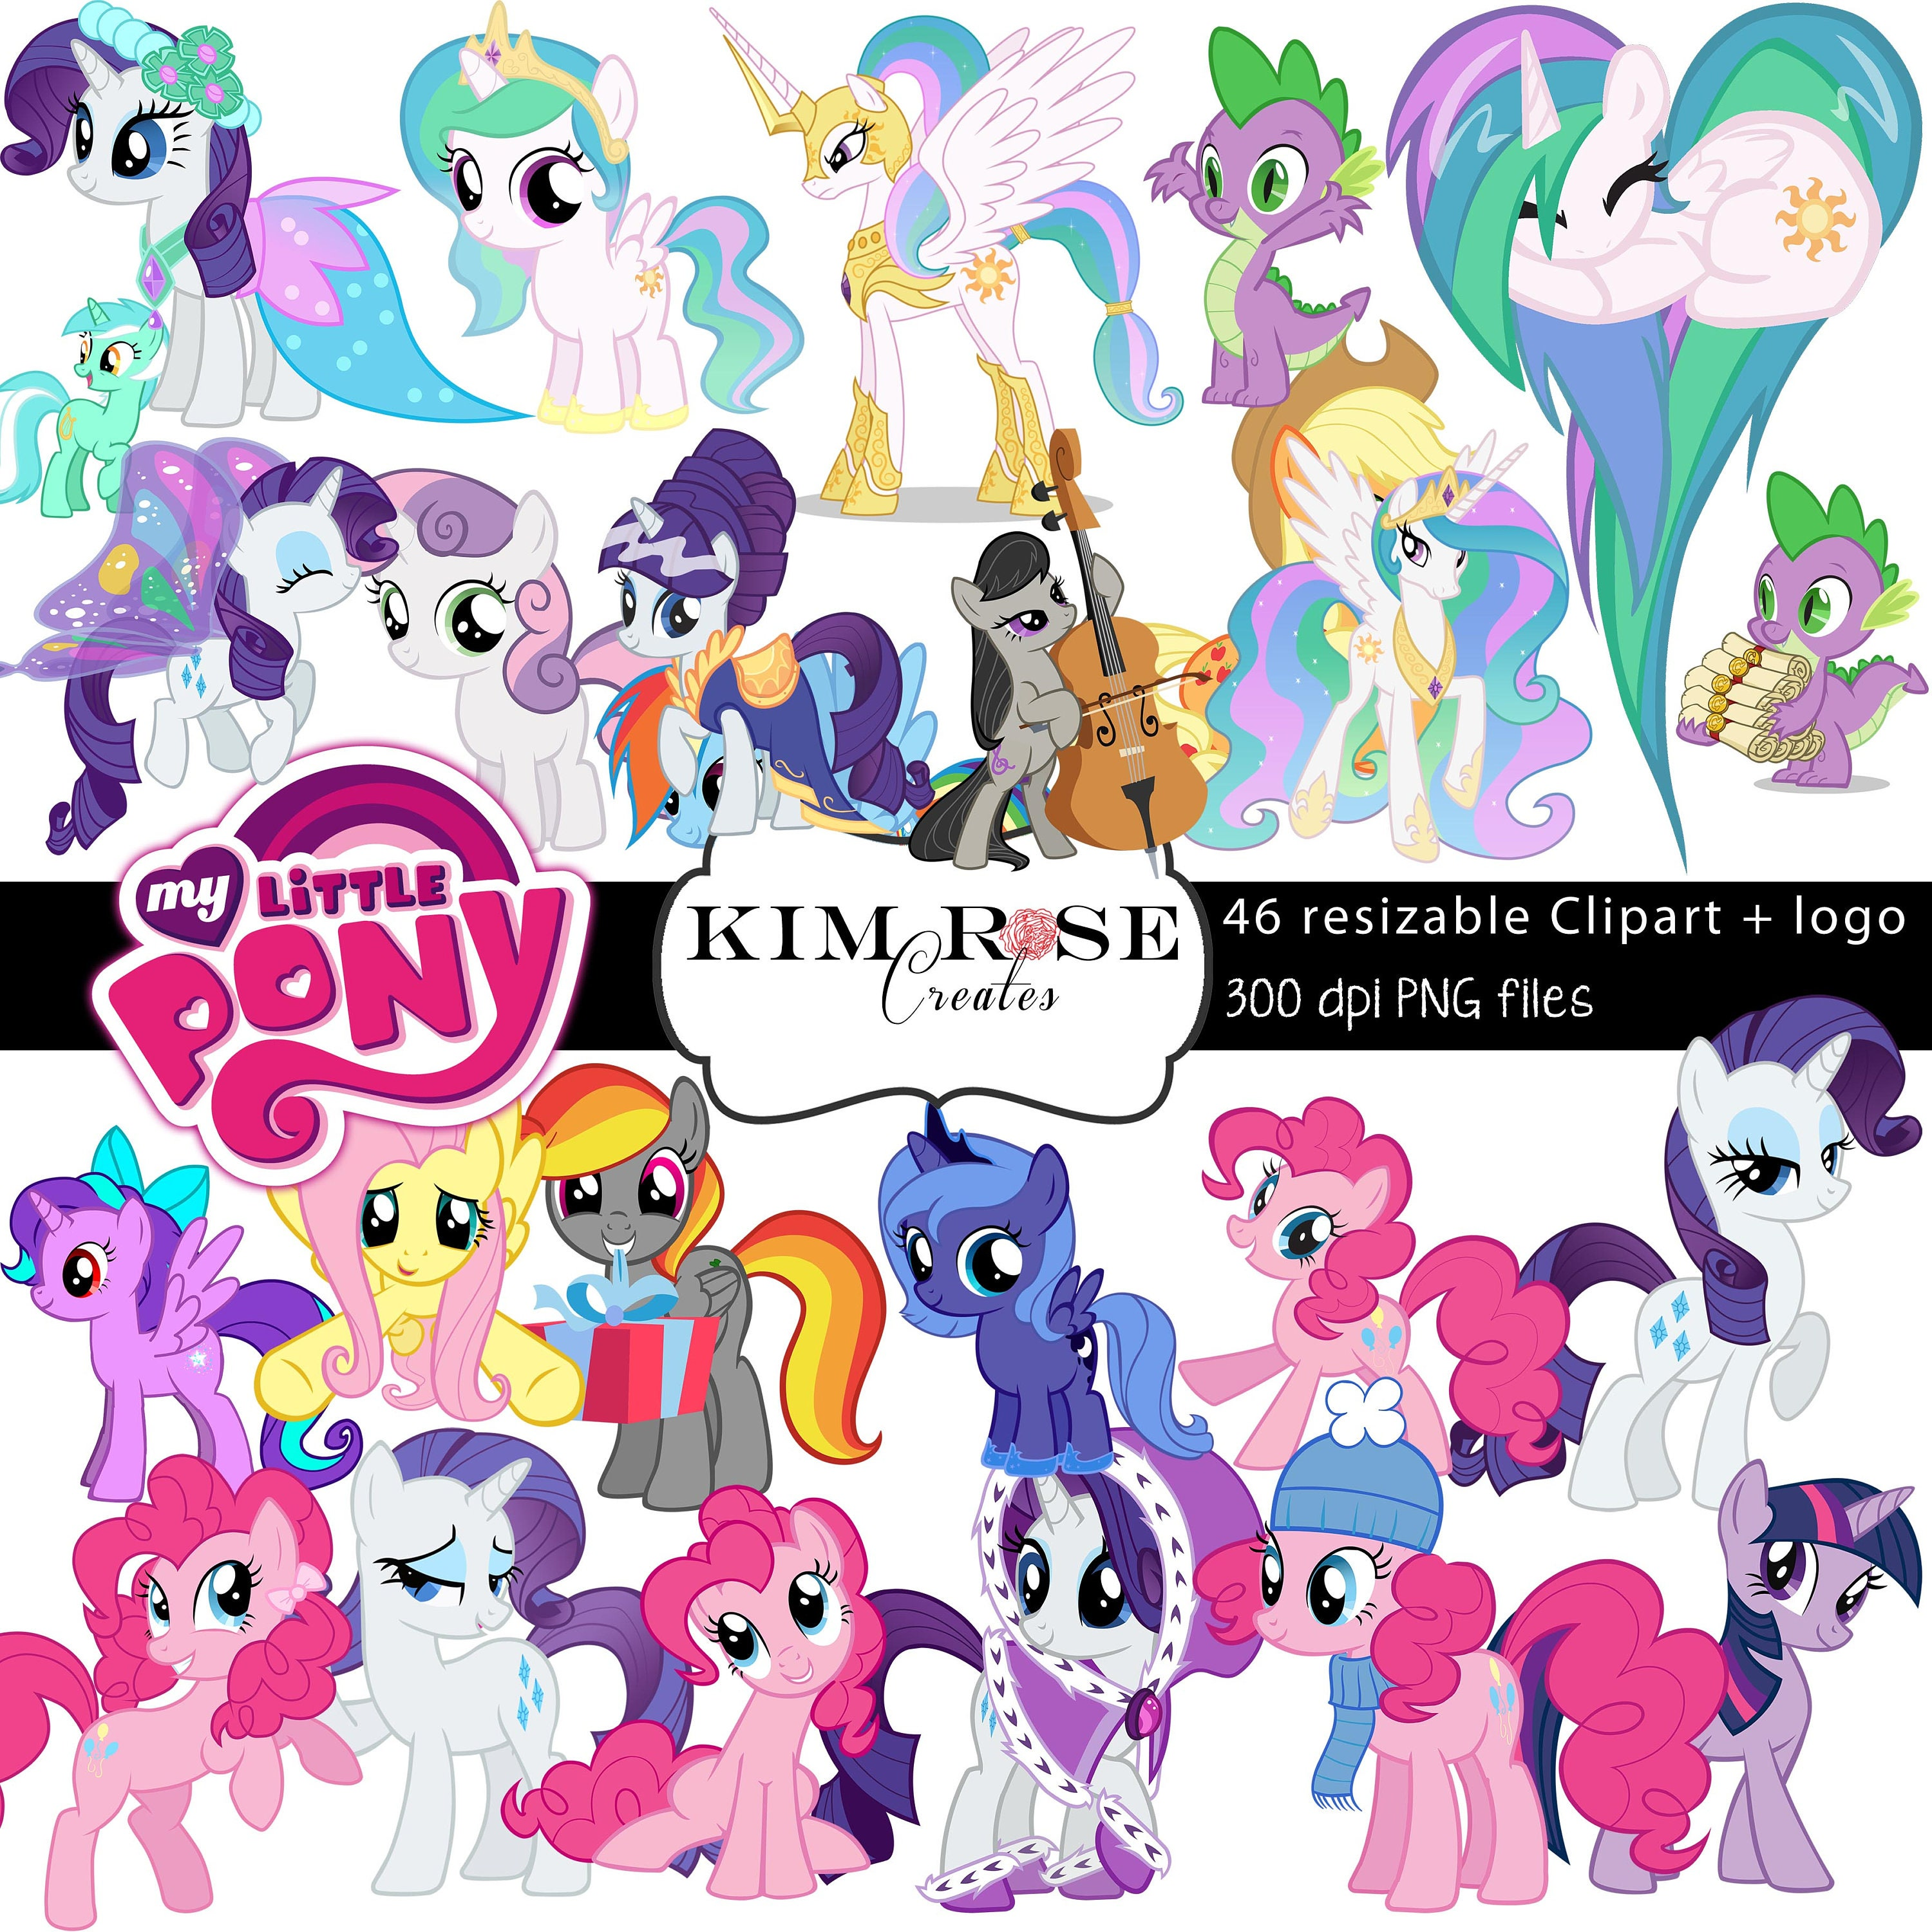 huge pack my little pony clipart 46 ponies 300 dpi png rh etsy com clipart my little pony my little pony clip art free